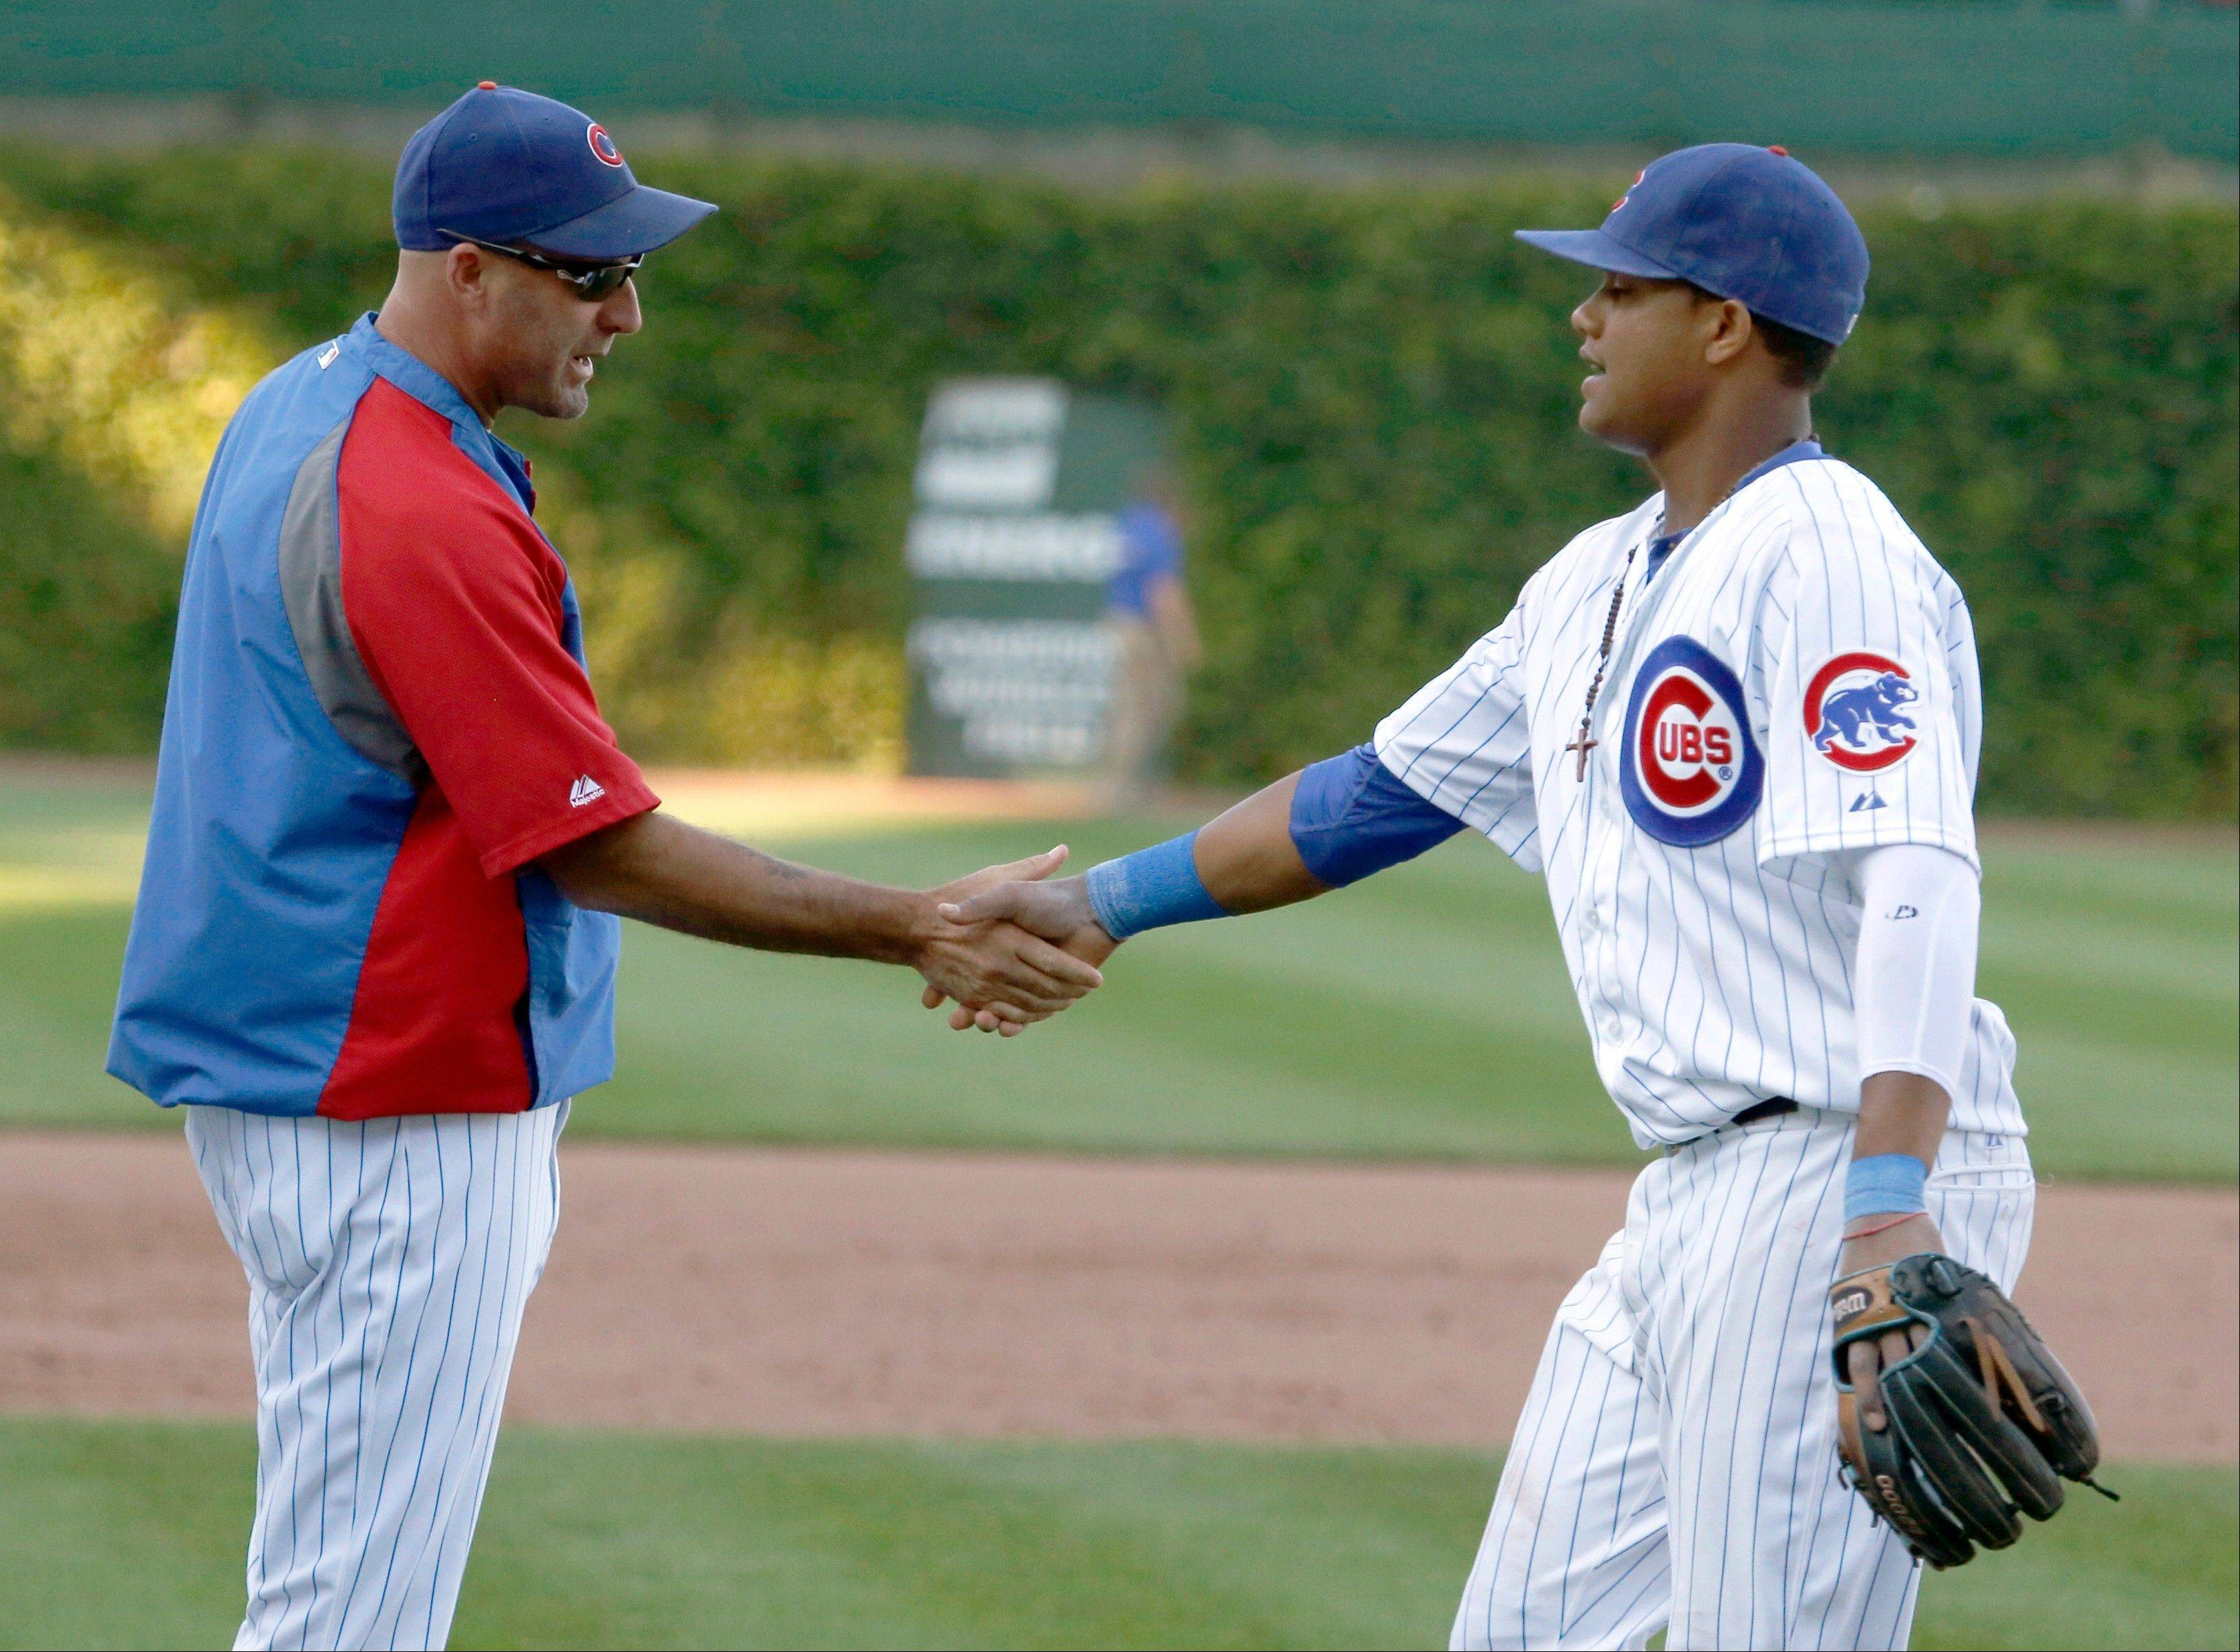 Chicago Cubs manager Dale Sveum greets shortstop Starlin Castro after the Cubs' 4-2 win over the Pittsburgh Pirates in their last home baseball game of the season Wednesday in Chicago. Sveum says he doesn't know if he'll be returning next year though his contract is through 2014.